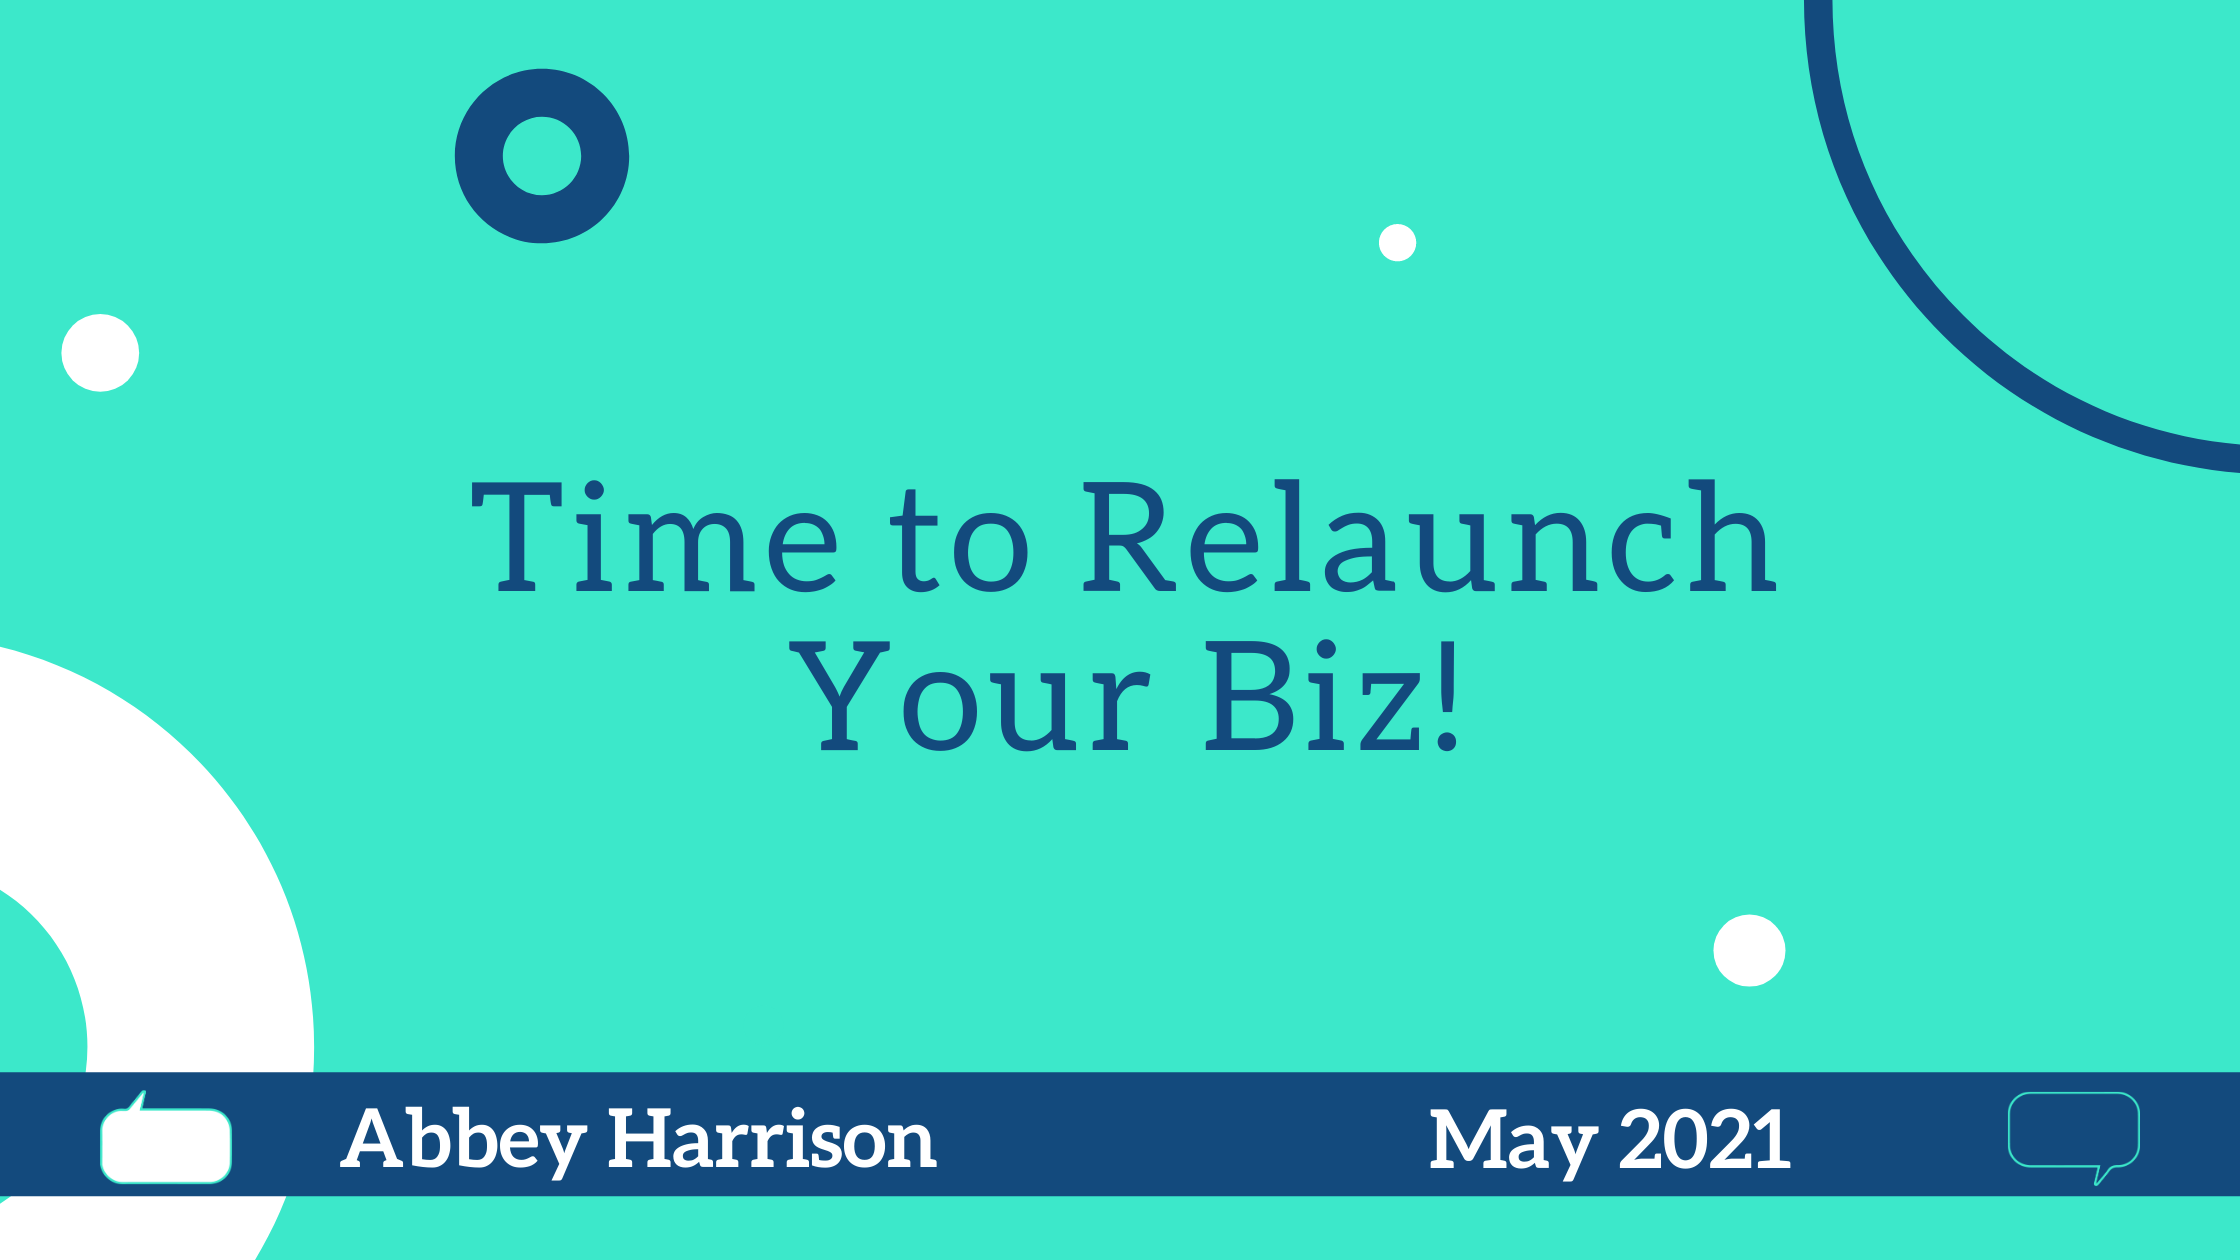 Time to Relaunch Your Biz!